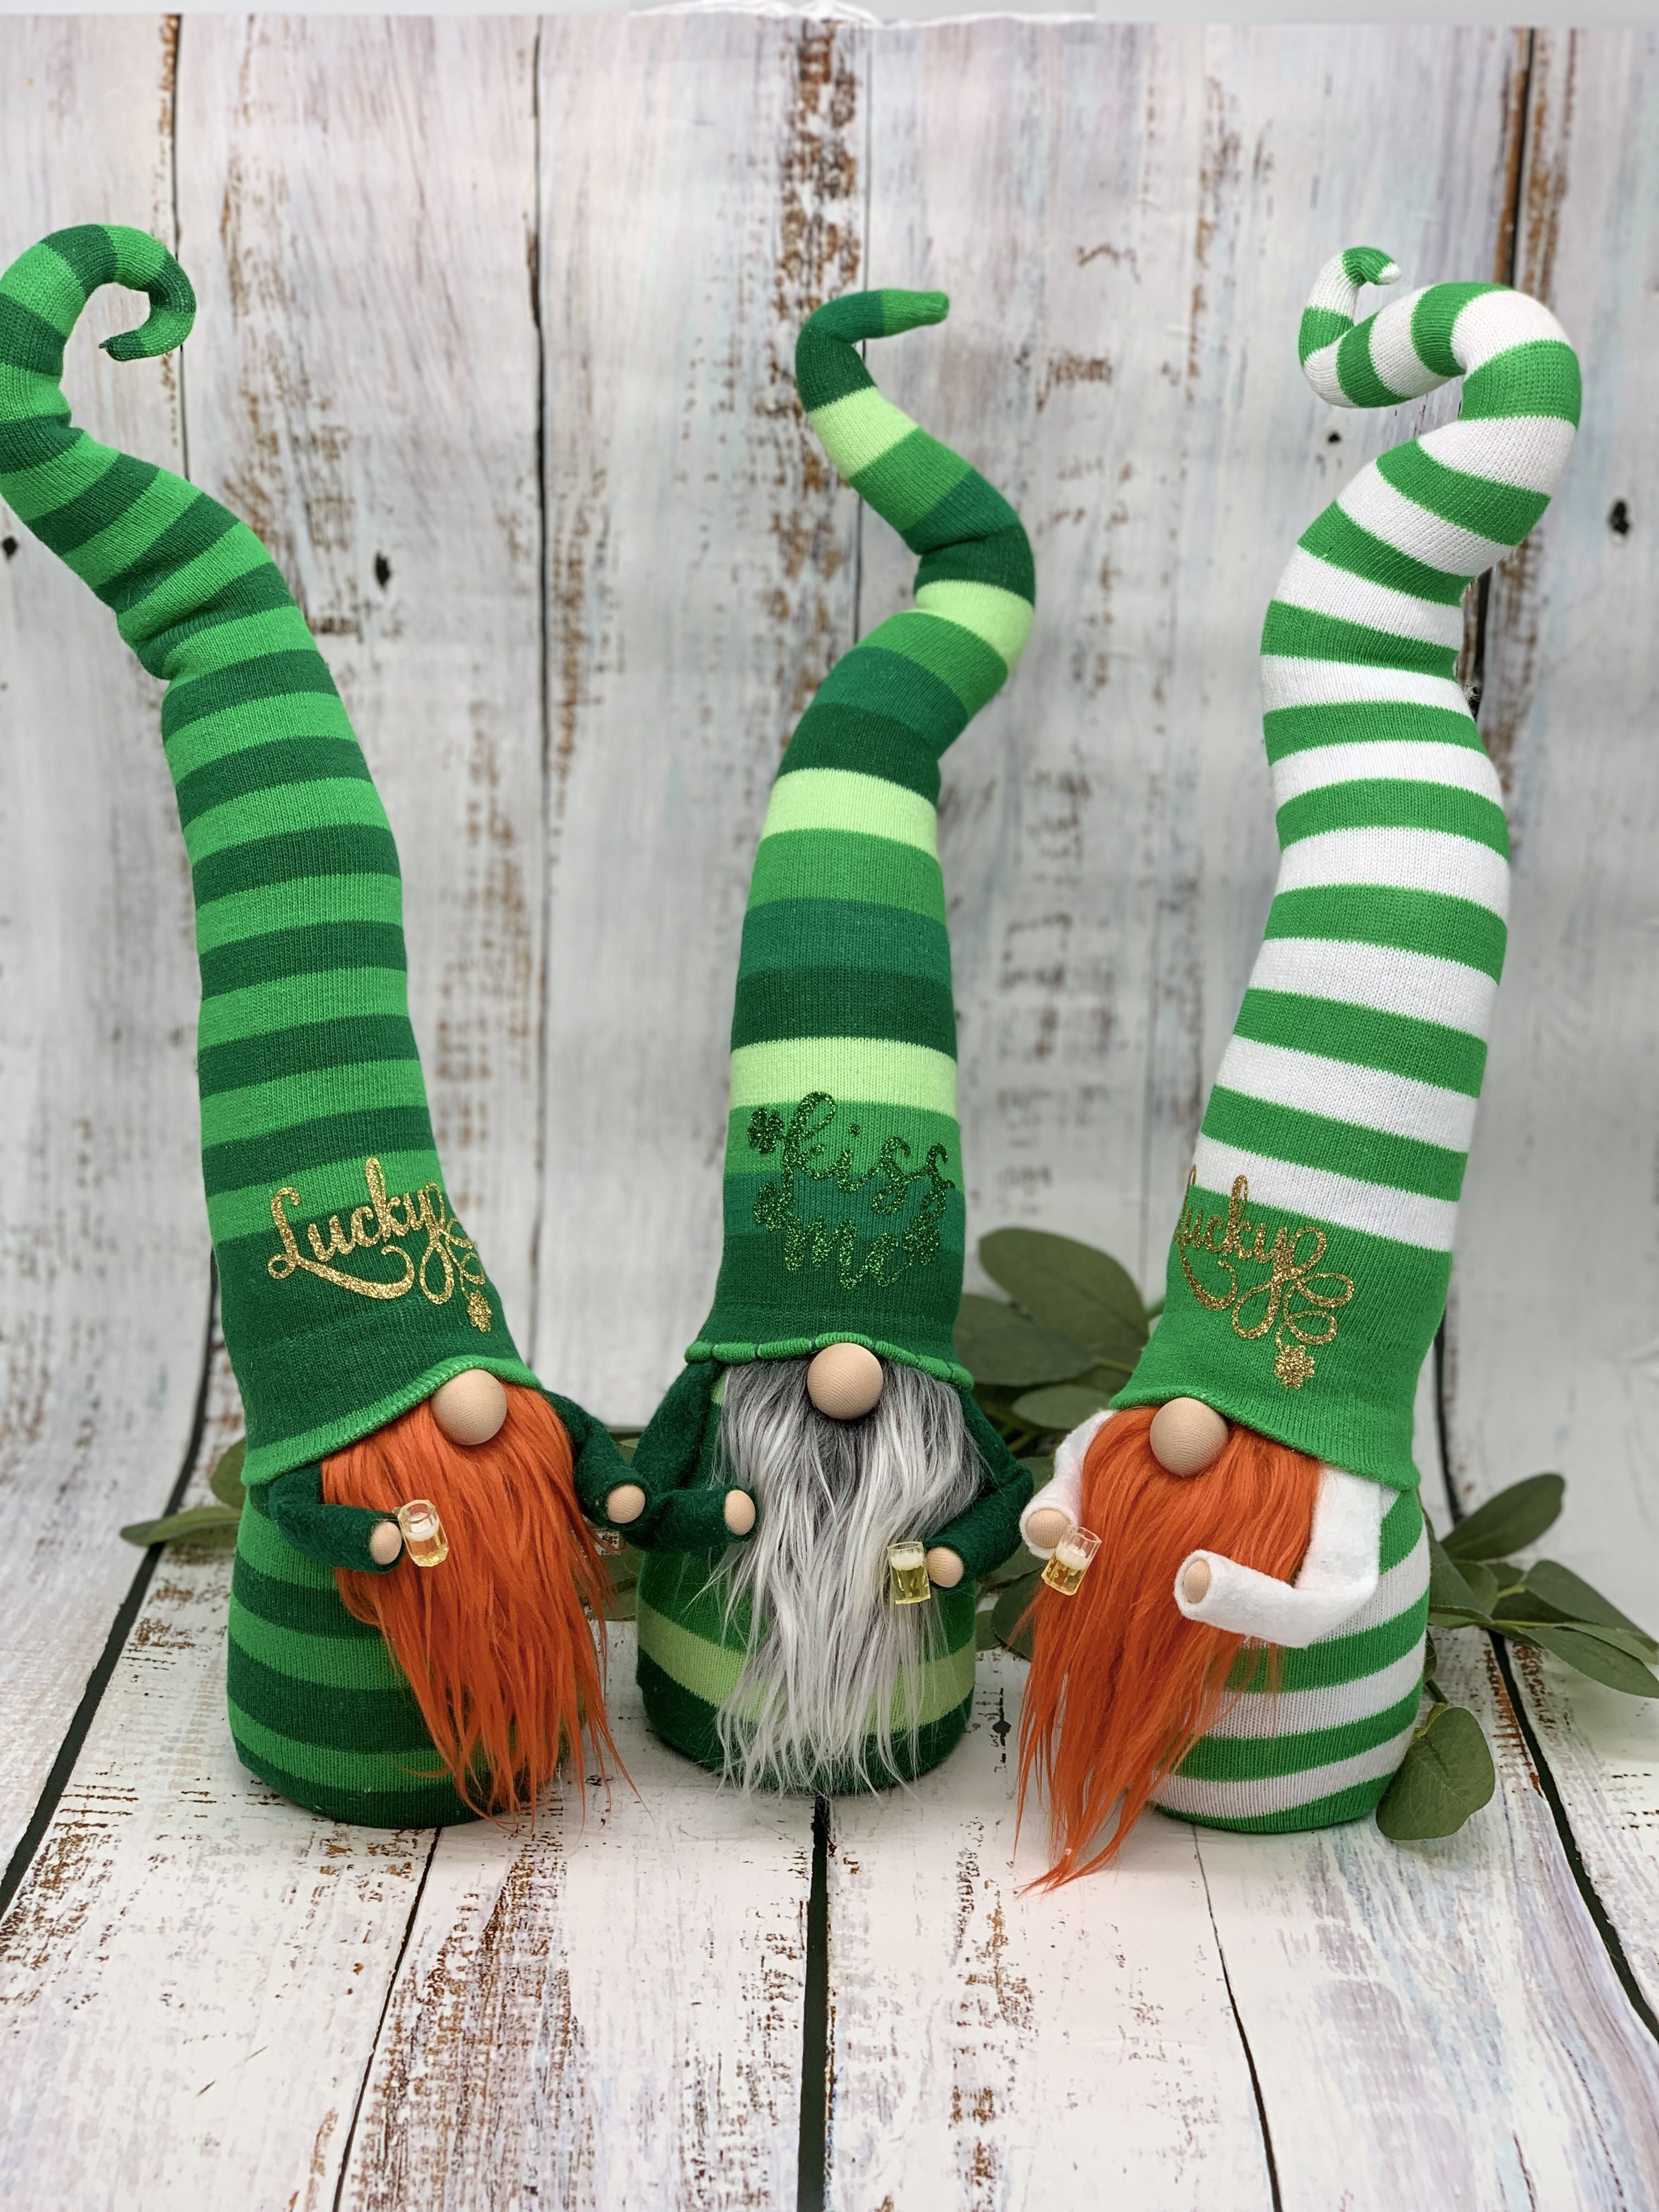 Download St. Patrick's Day party gnomes in 2020 | Gnomes, Handmade ...